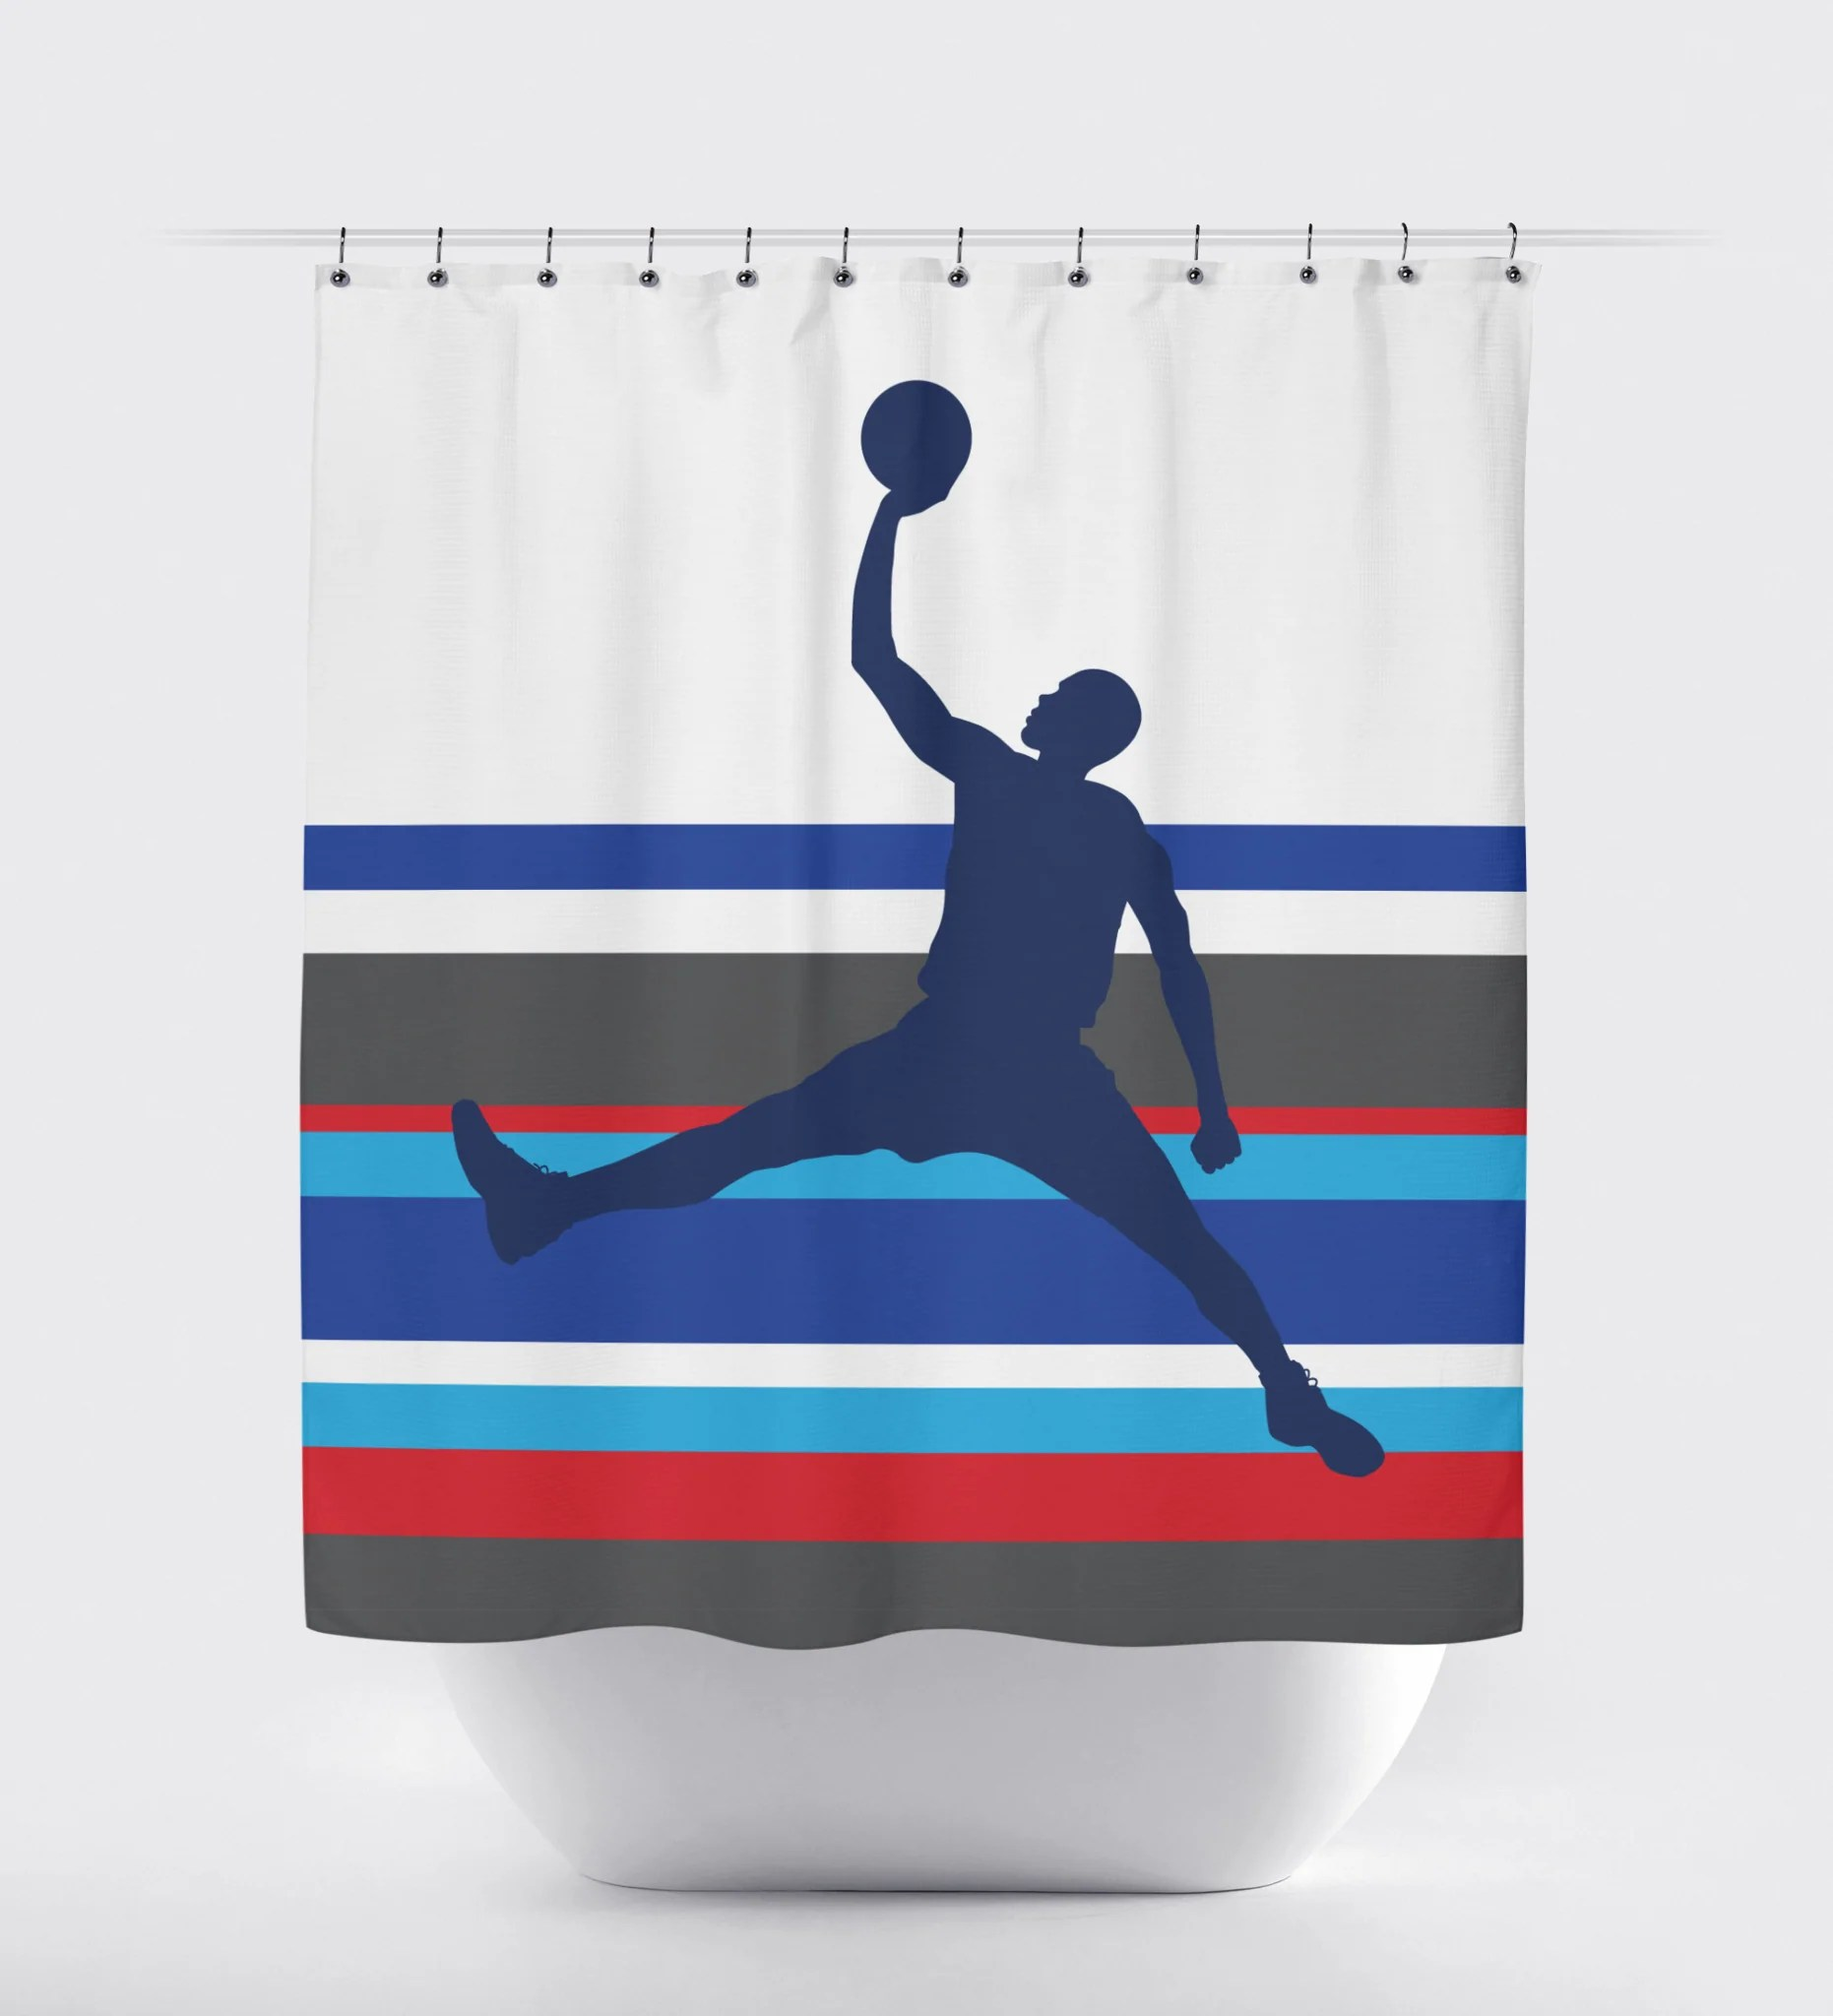 Basketball Multi Striped Shower Curtain Royal Blue Charcoal Red Turquoise Navy And White Choose Any Colors